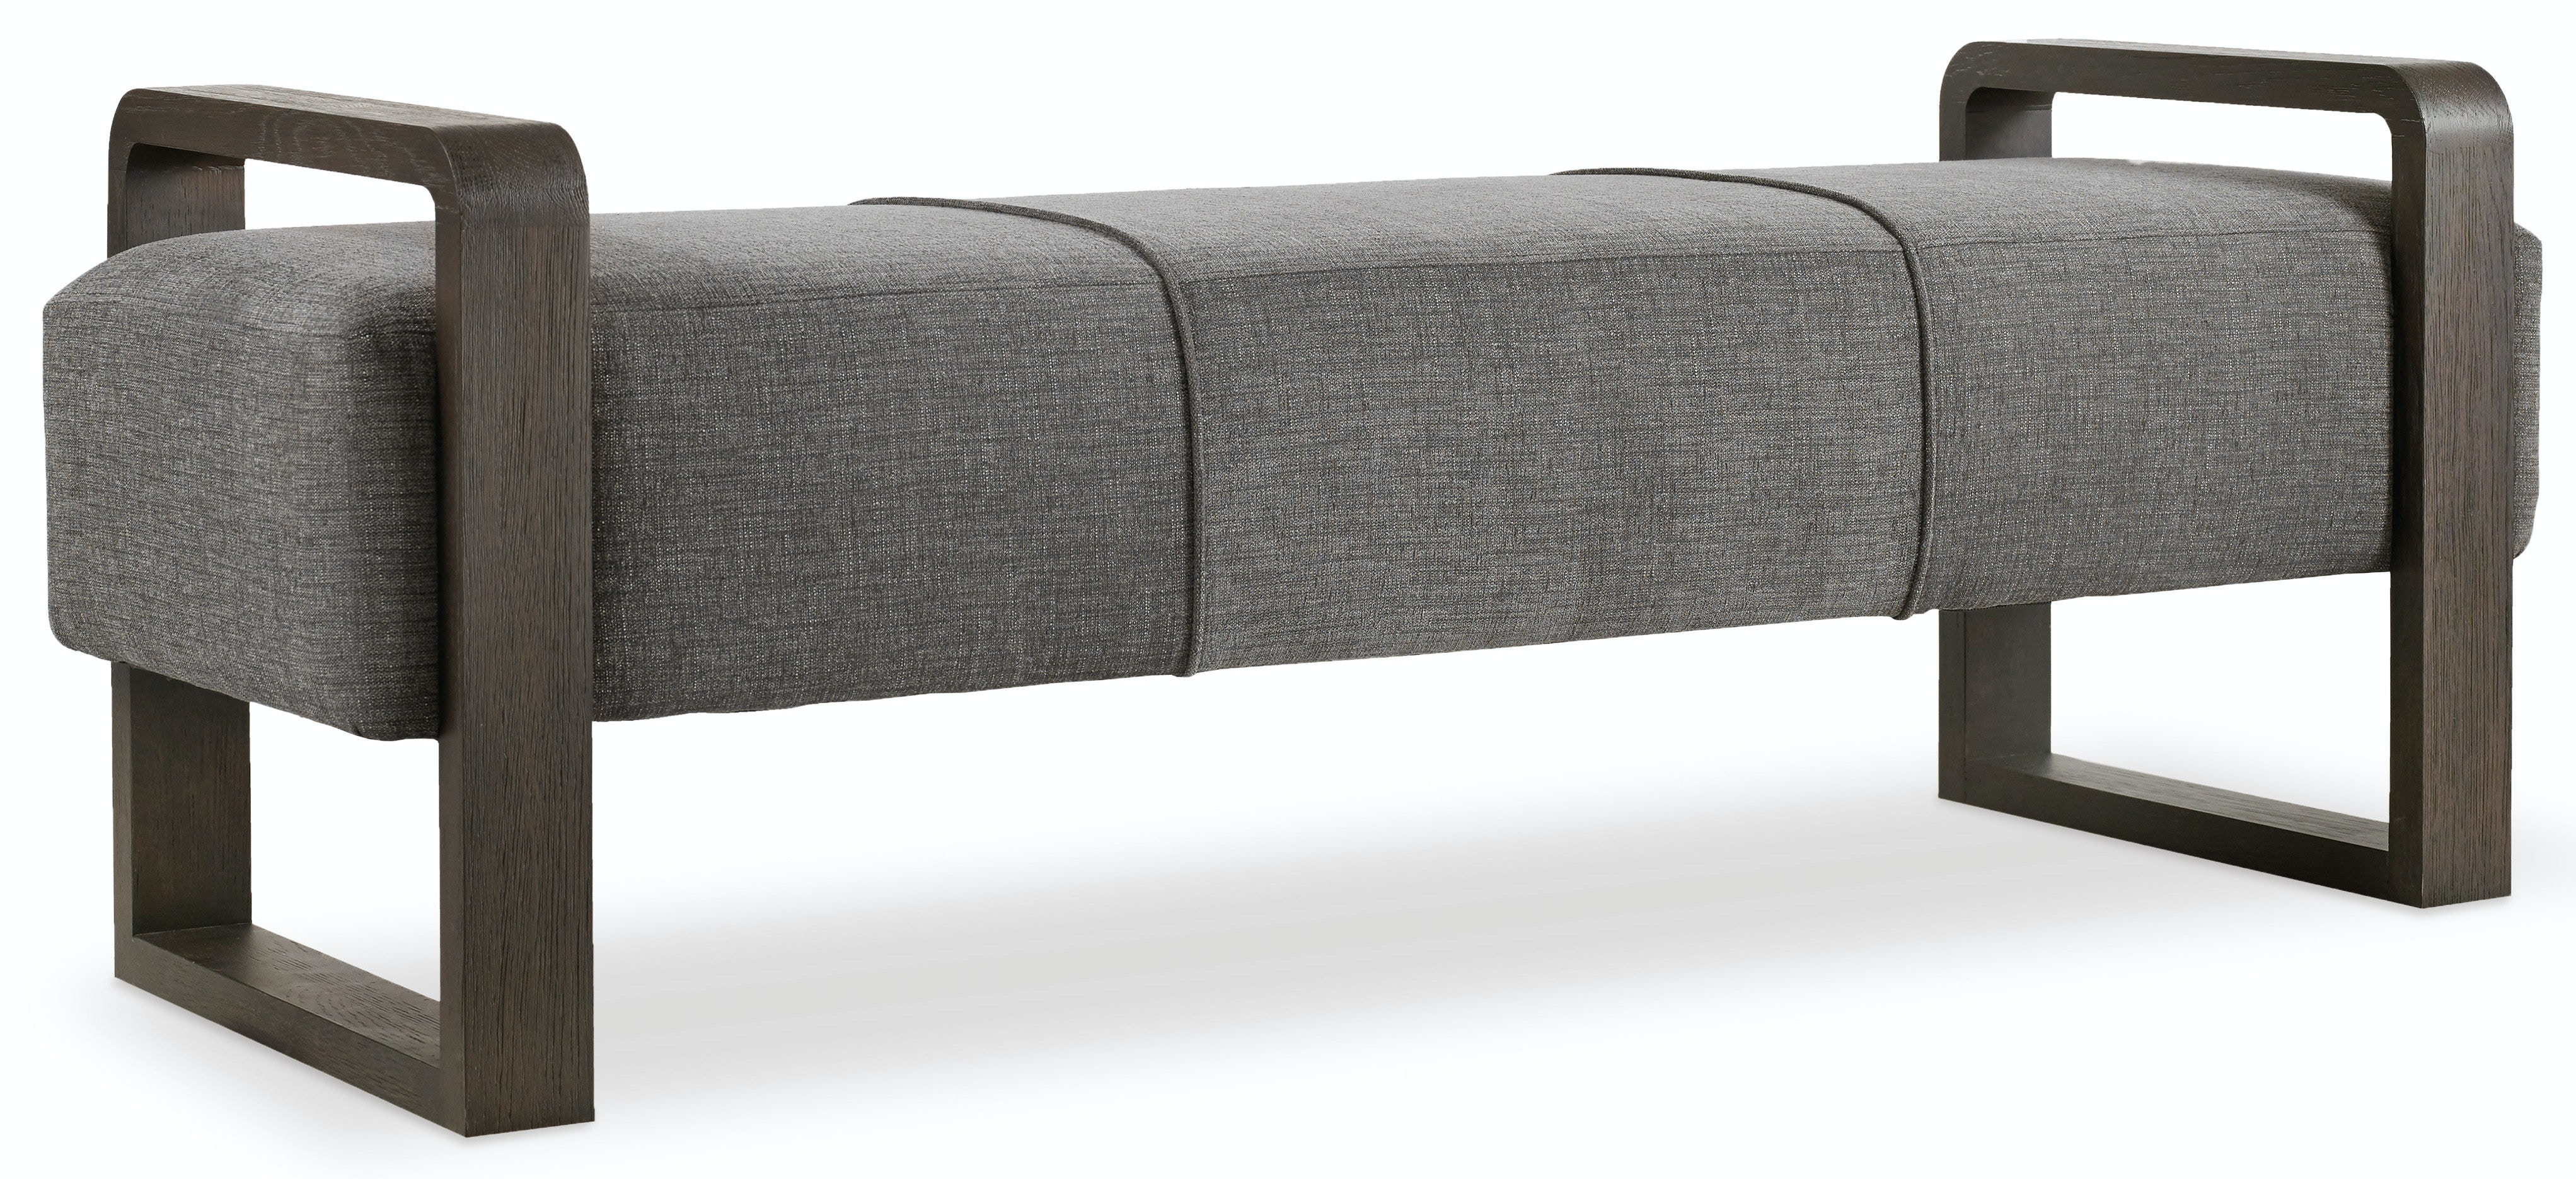 Curata Upholstered Bench 1600-50006-DKW